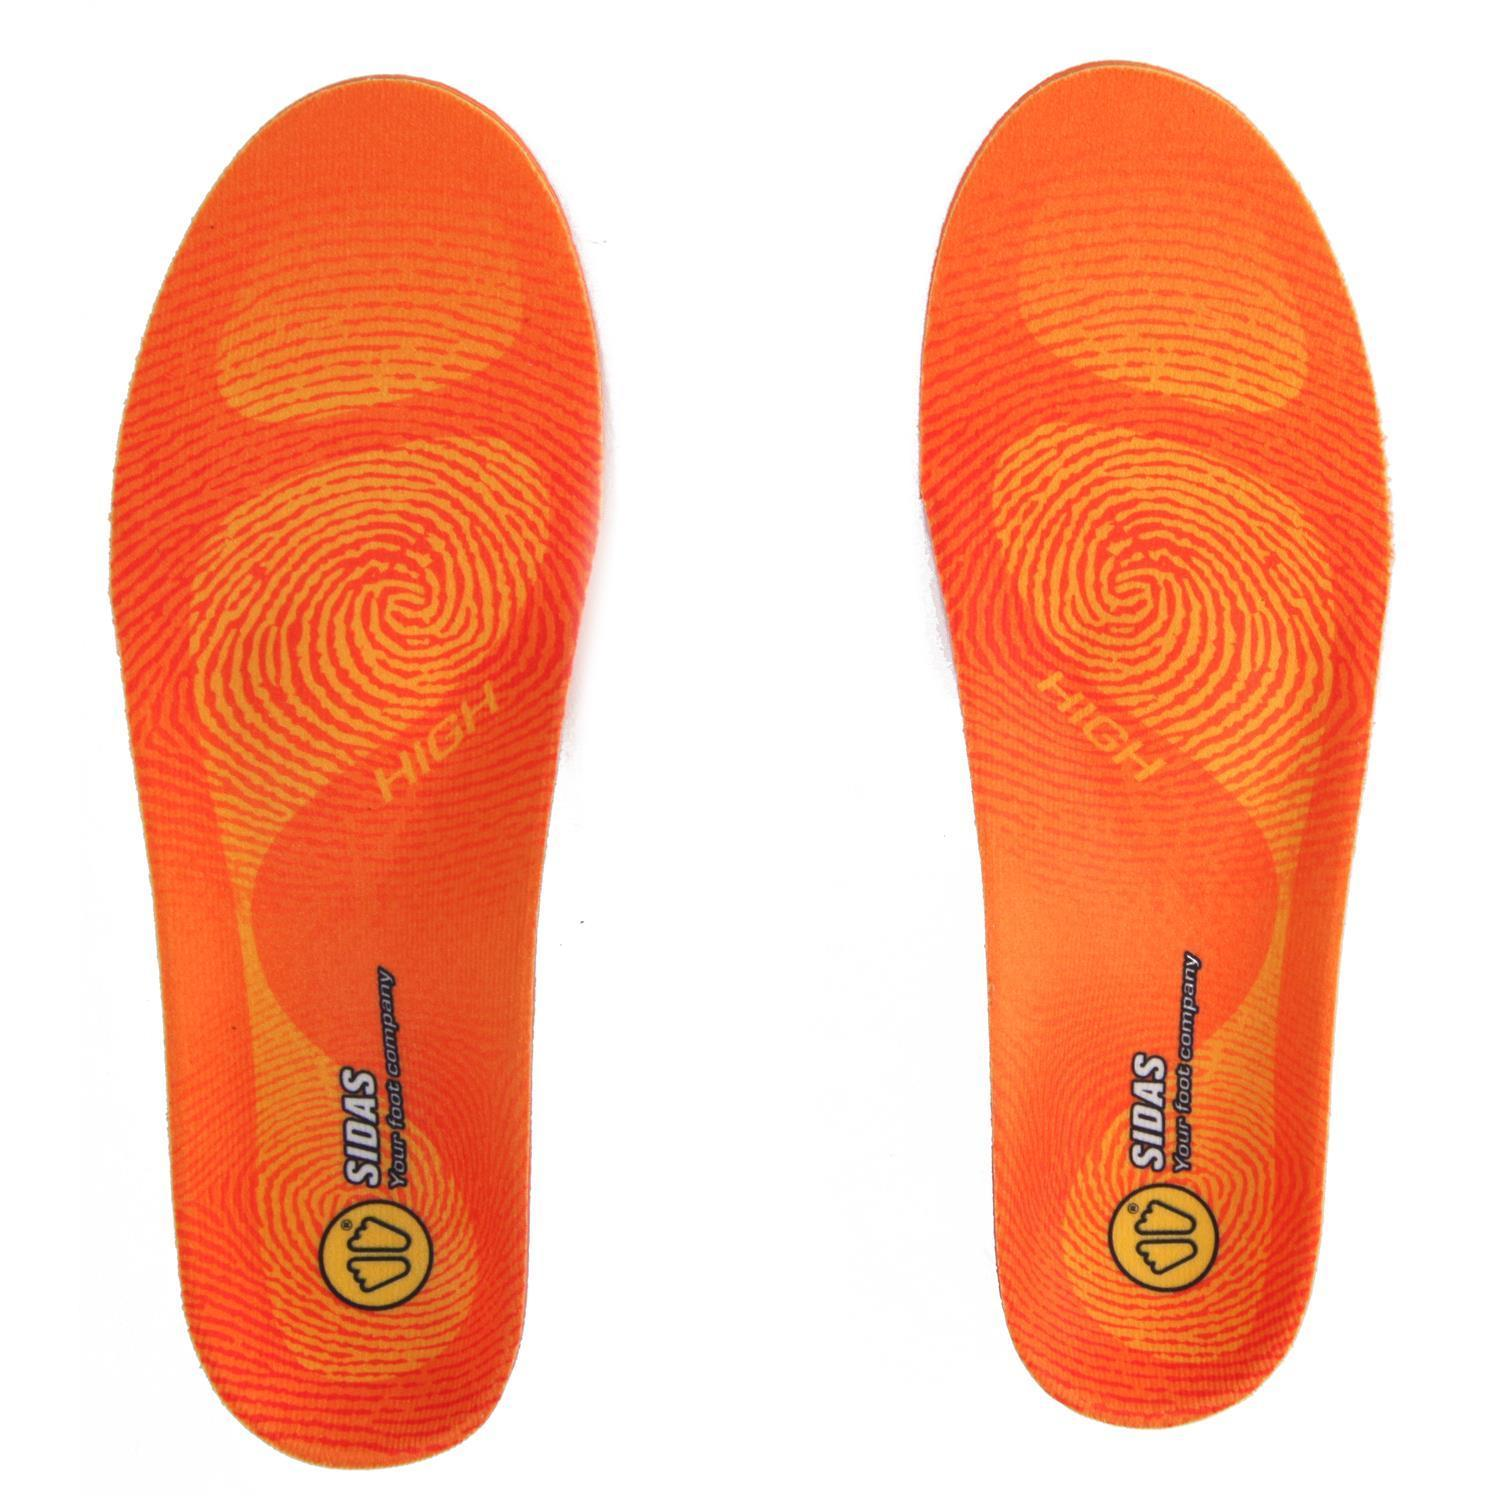 Sidas Winter 3Feet Footbed Insole